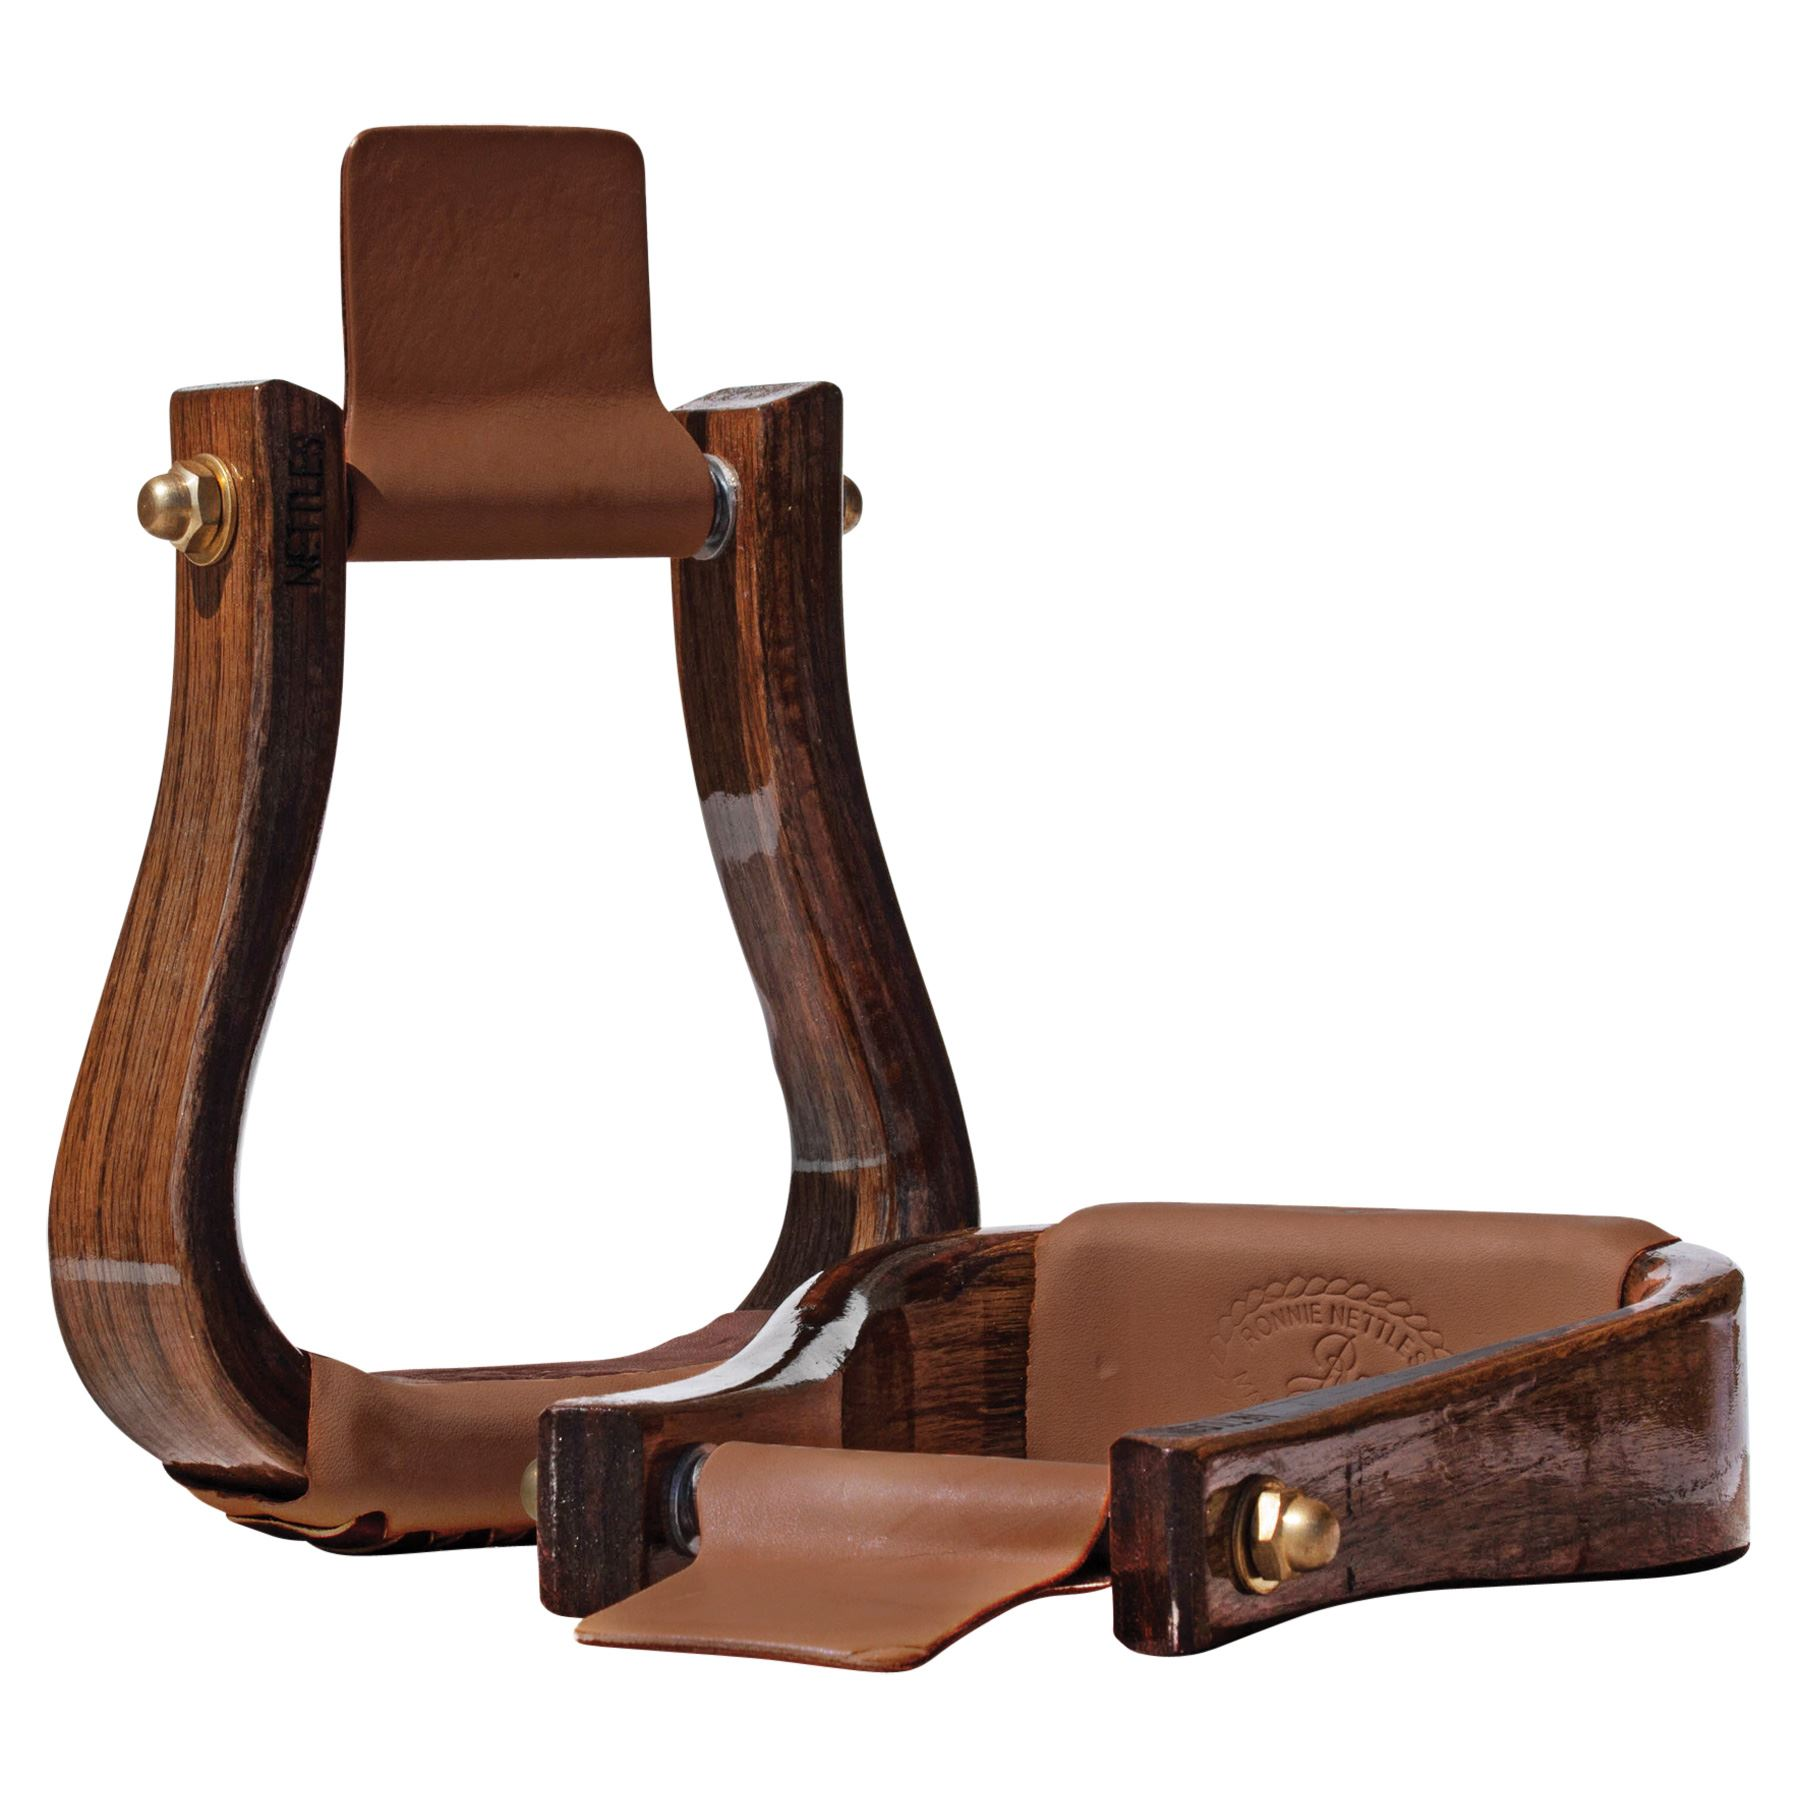 "Nettles 2"" Flatbottom Cherry Wooden Western Stirrups"